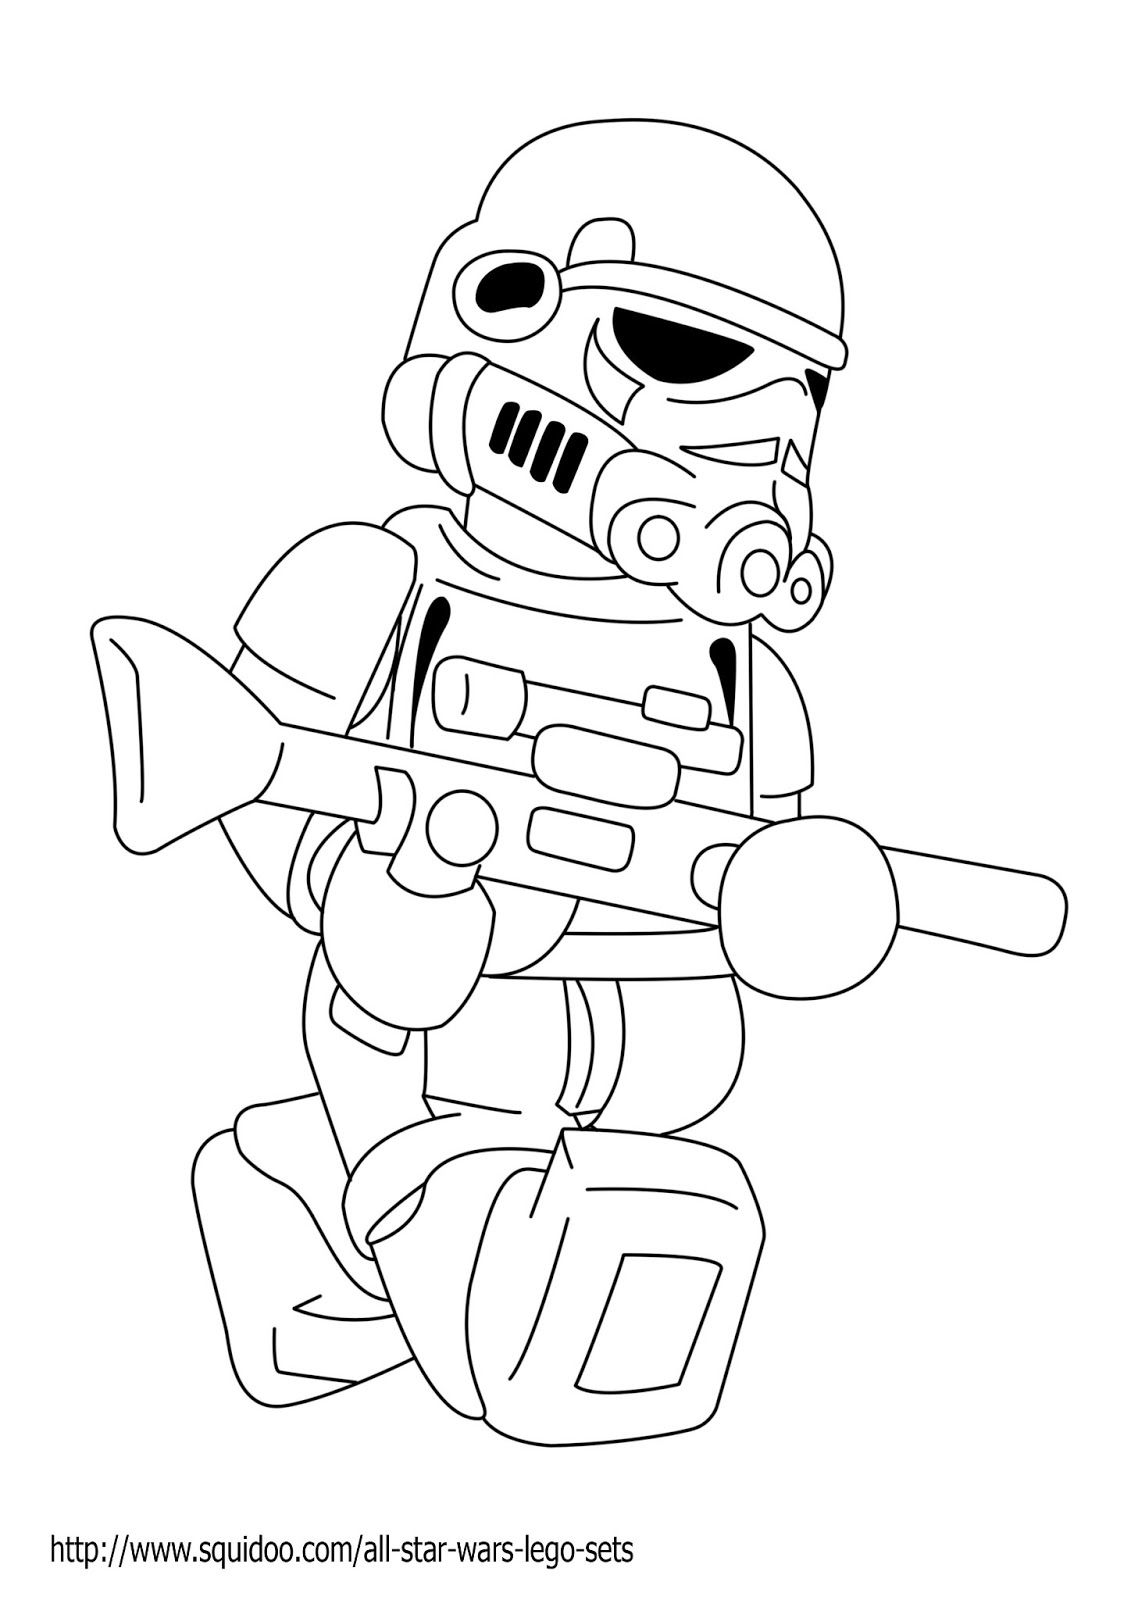 lego character coloring pages lego star wars characters coloring pages at getcolorings lego character coloring pages